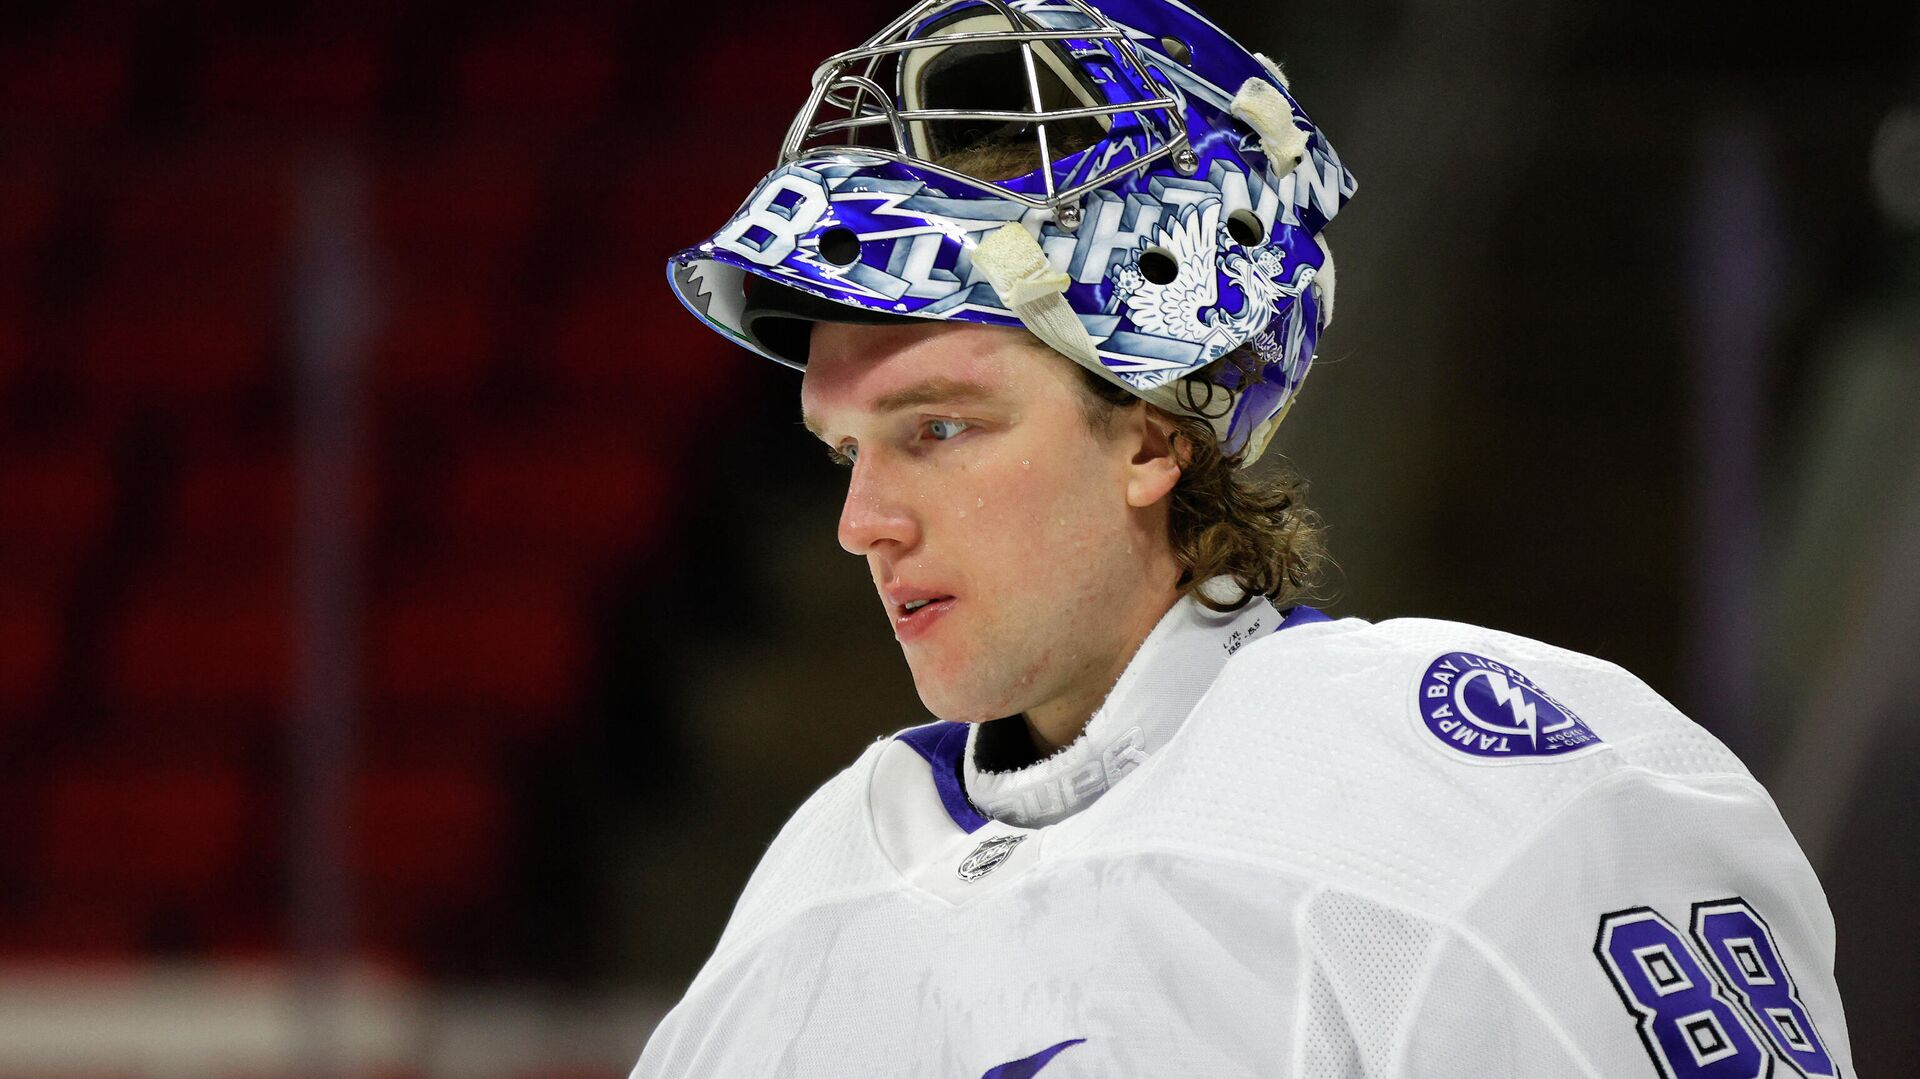 RALEIGH, NORTH CAROLINA - FEBRUARY 22: Andrei Vasilevskiy #88 of the Tampa Bay Lightning looks on during the first period of their game against the Carolina Hurricanes at PNC Arena on February 22, 2021 in Raleigh, North Carolina.   Jared C. Tilton/Getty Images/AFP (Photo by Jared C. Tilton / GETTY IMAGES NORTH AMERICA / Getty Images via AFP) - РИА Новости, 1920, 01.03.2021